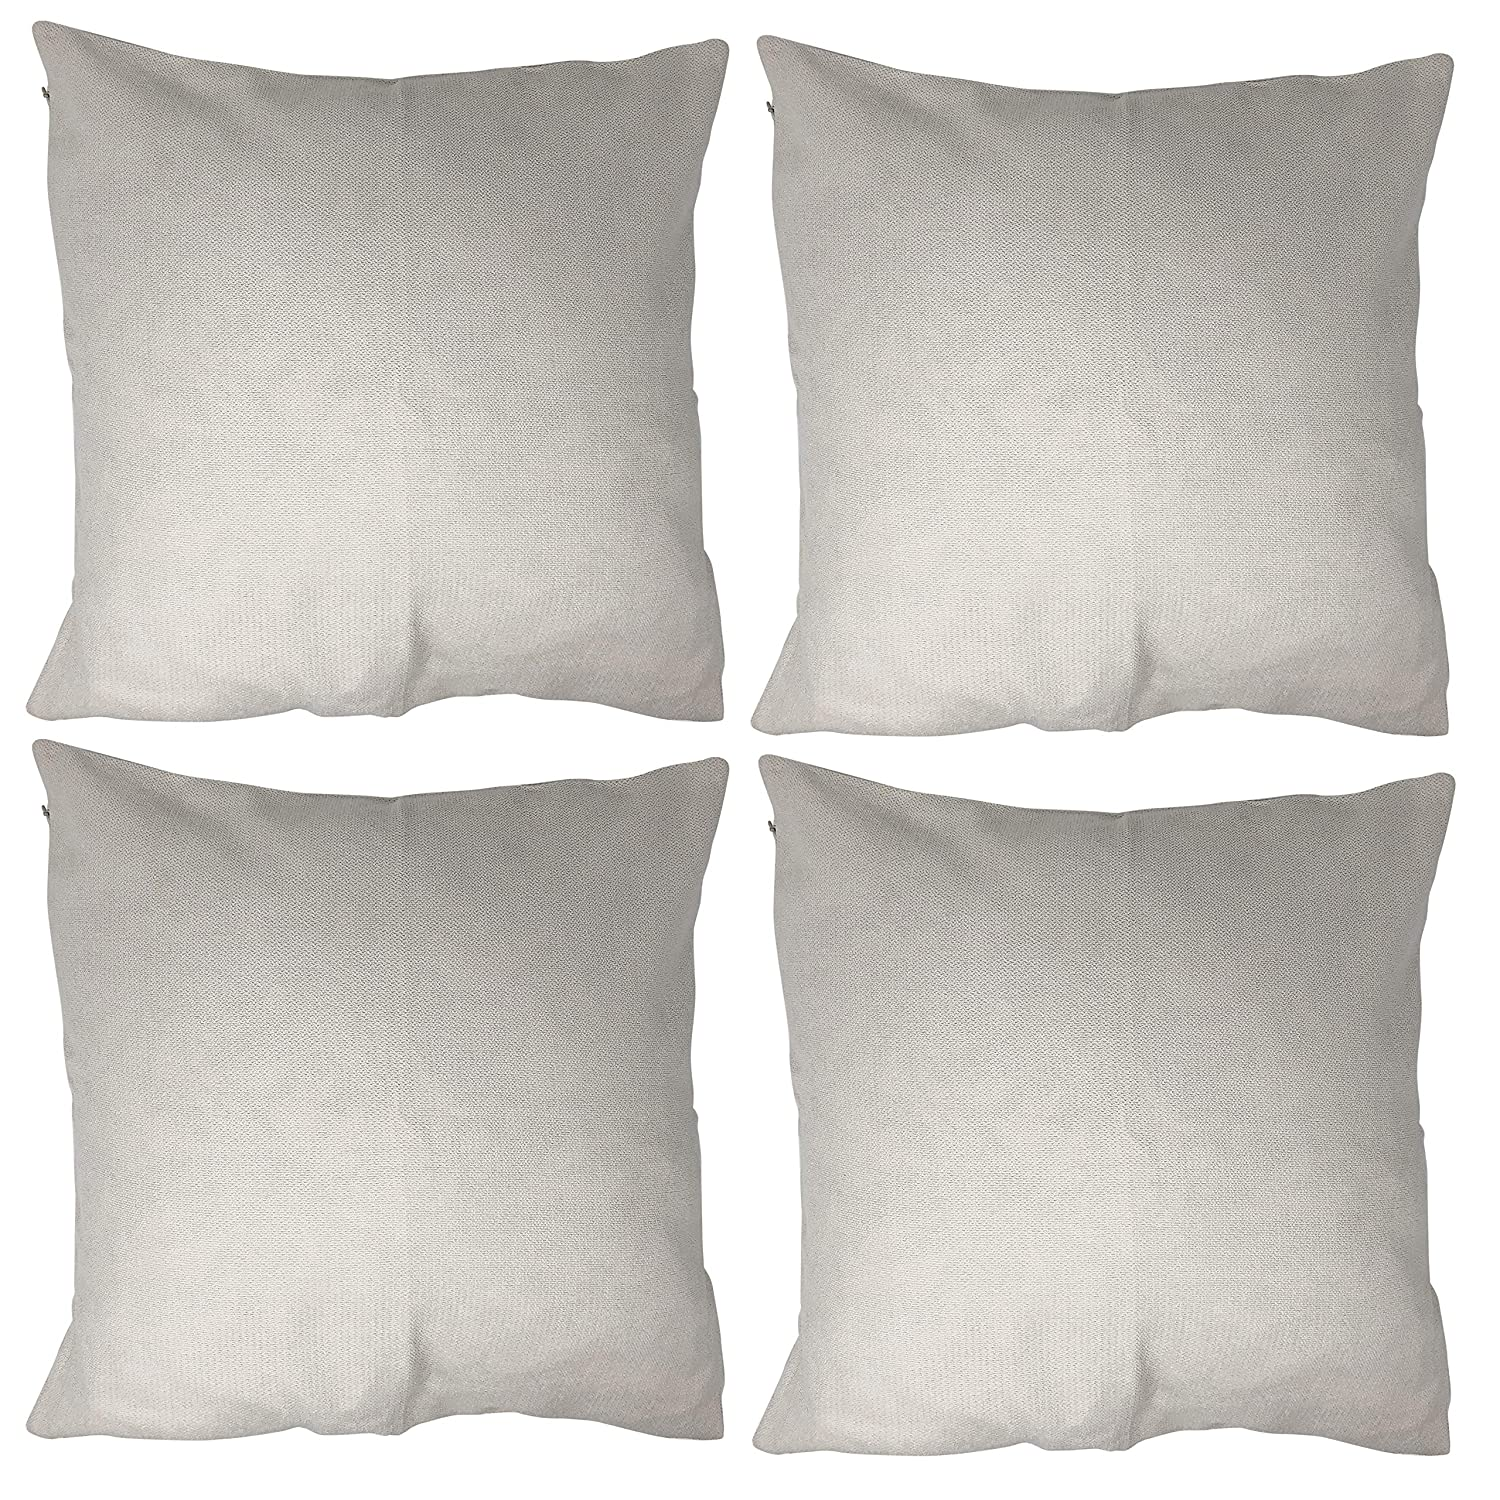 Allgala 4-Pack Decorative Throw Pillow Cover 18x18 Inch-White-PW82201